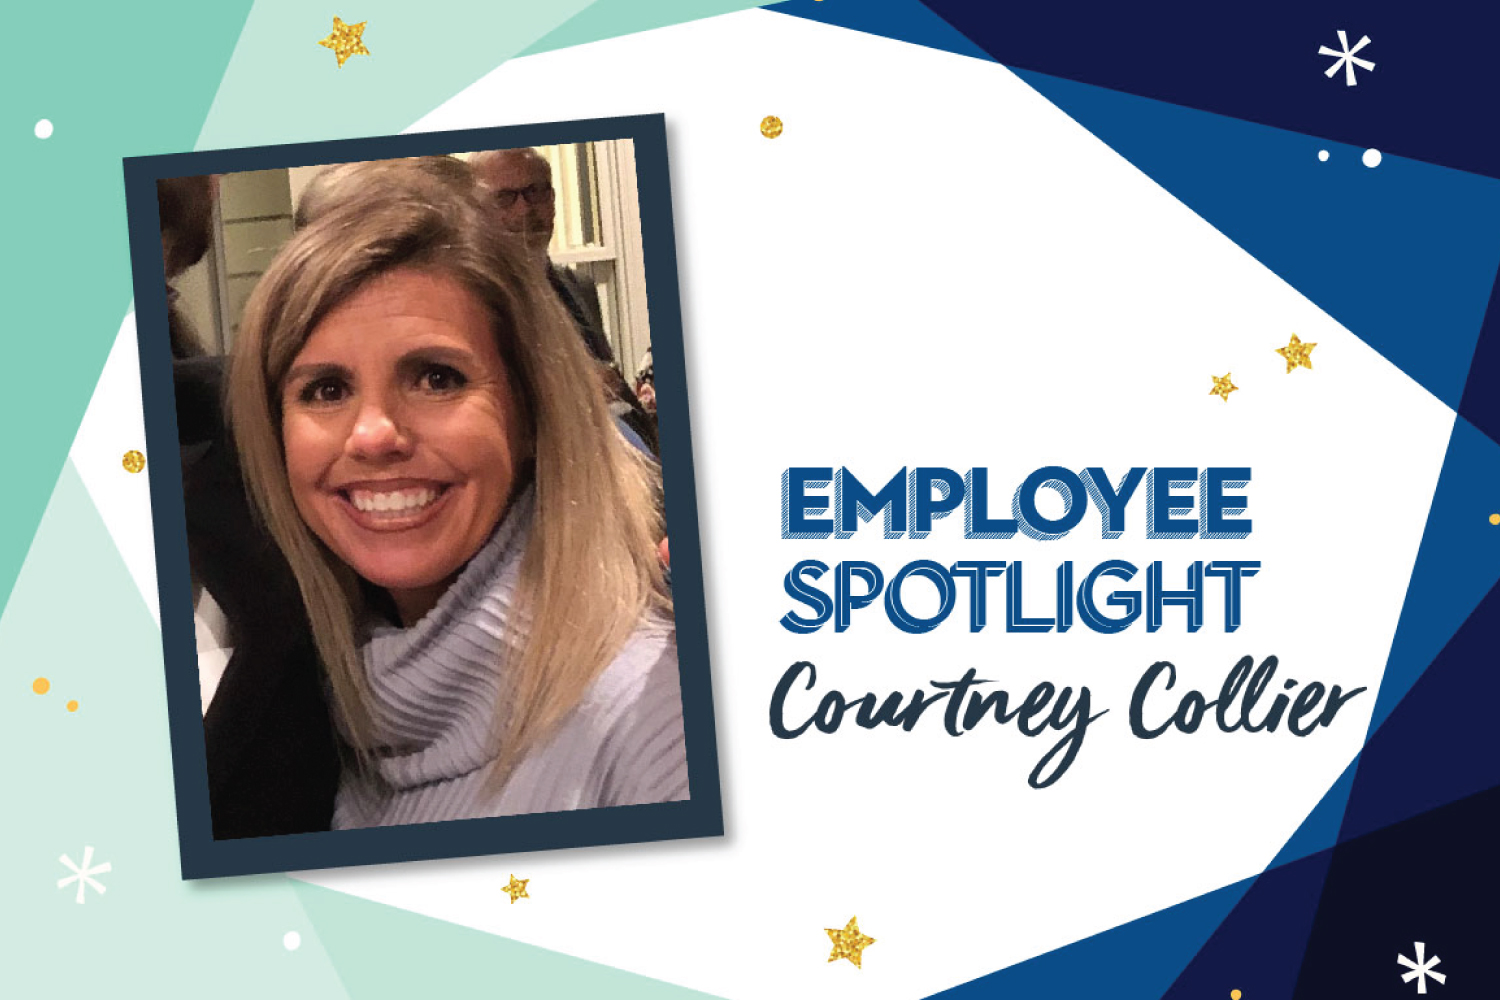 Employee Spotlight: Courtney Collier